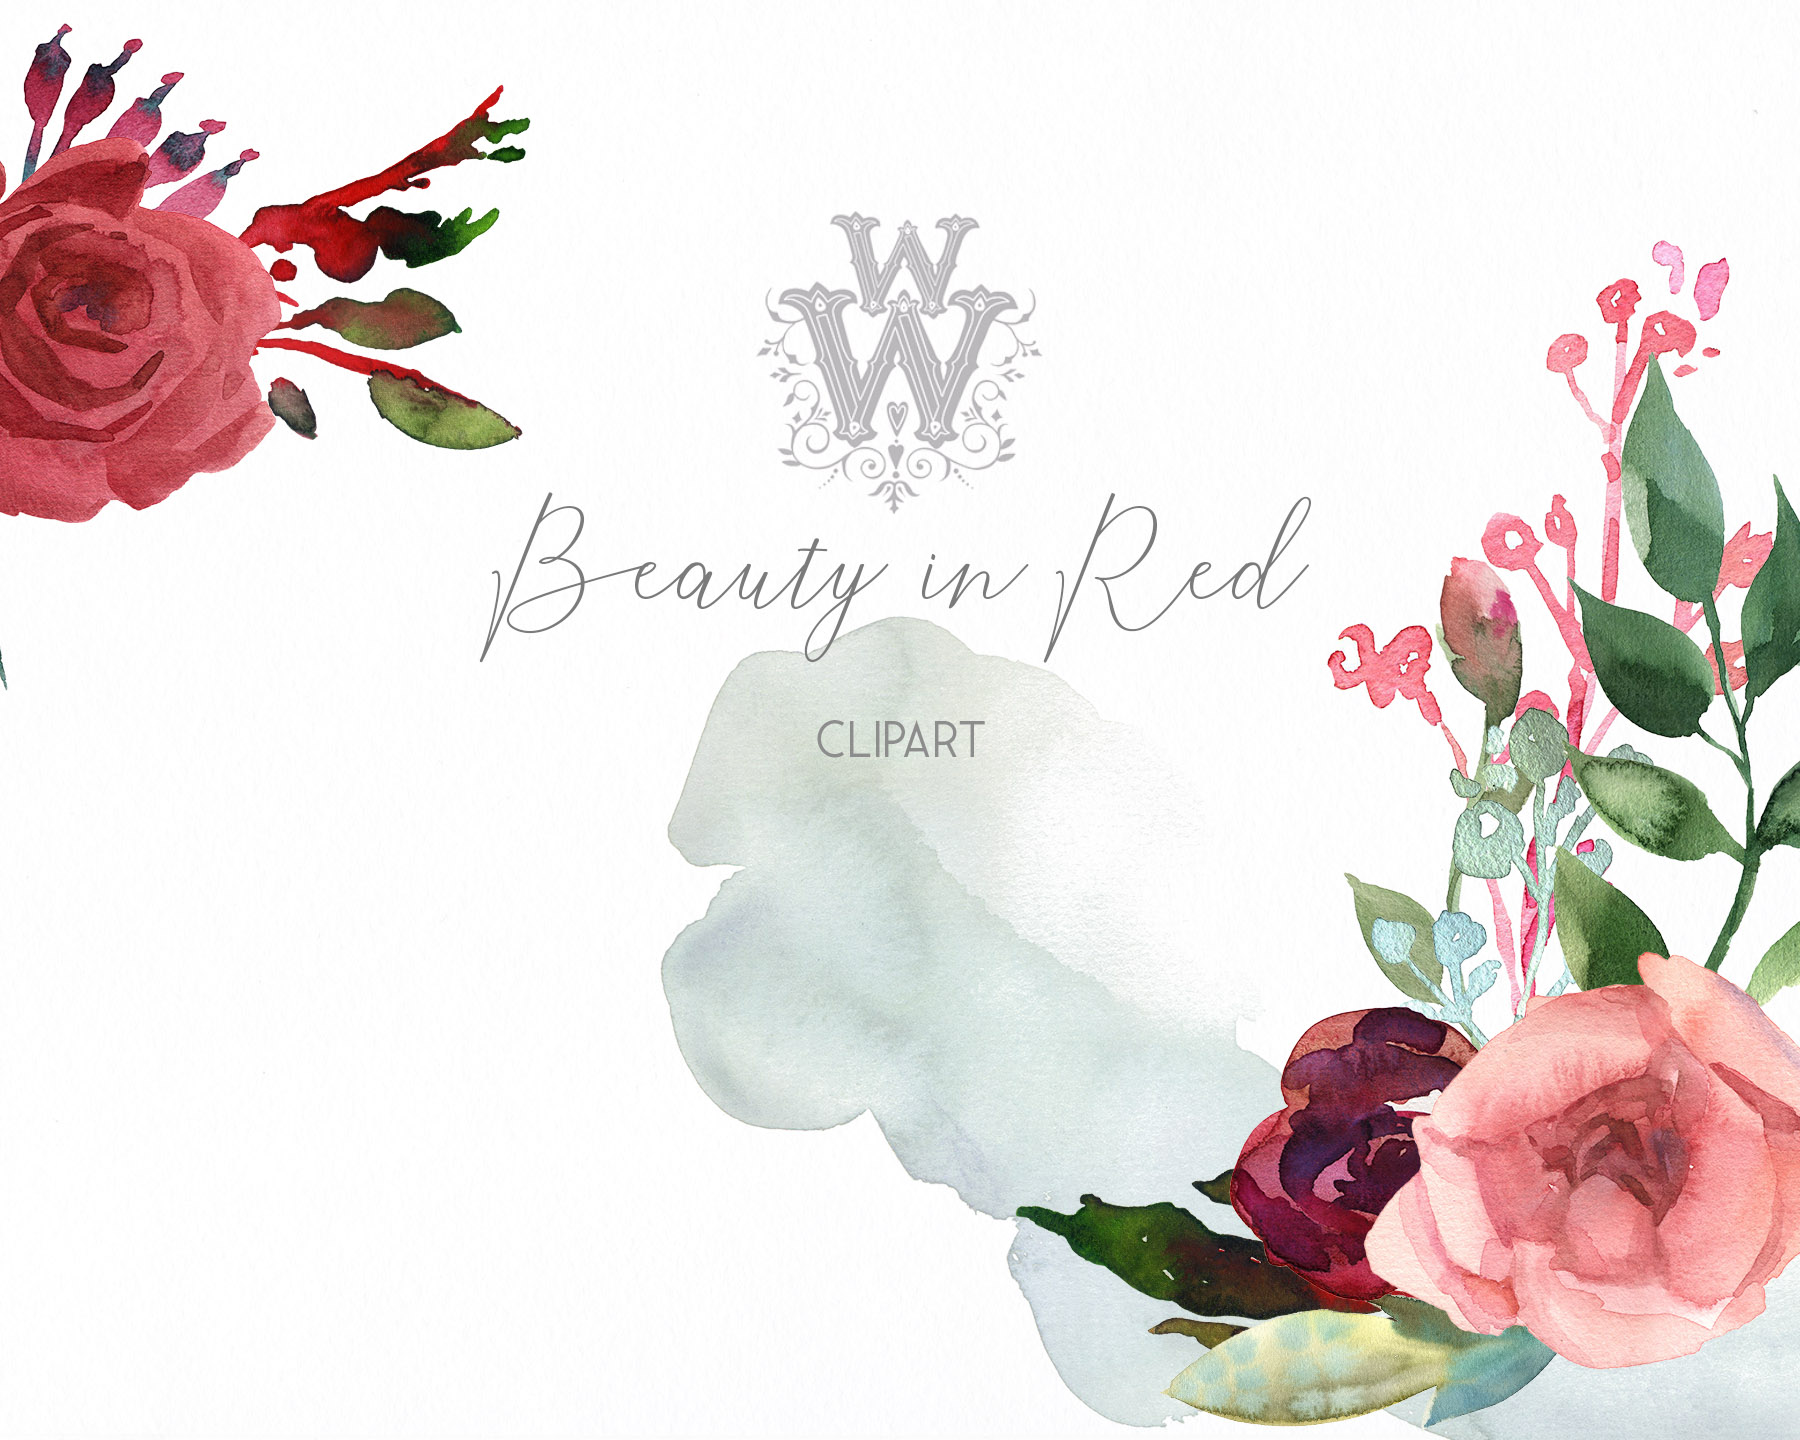 Watercolor red rose flowers wedding clipart, boho pink peony example image 7